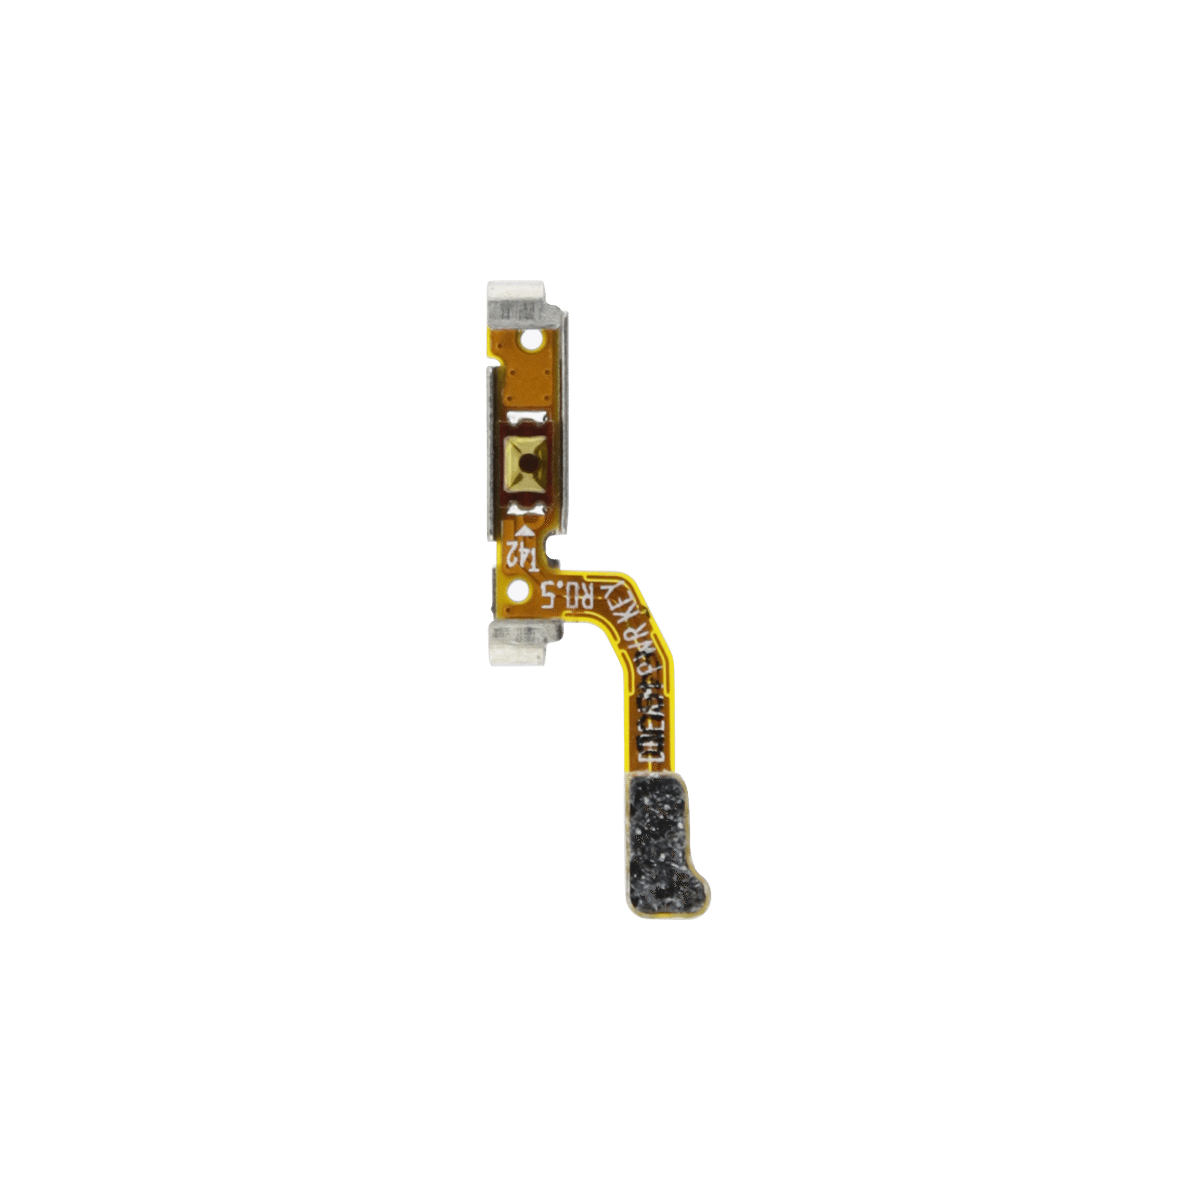 Samsung Galaxy S8 Power Button Flex Cable Replacement